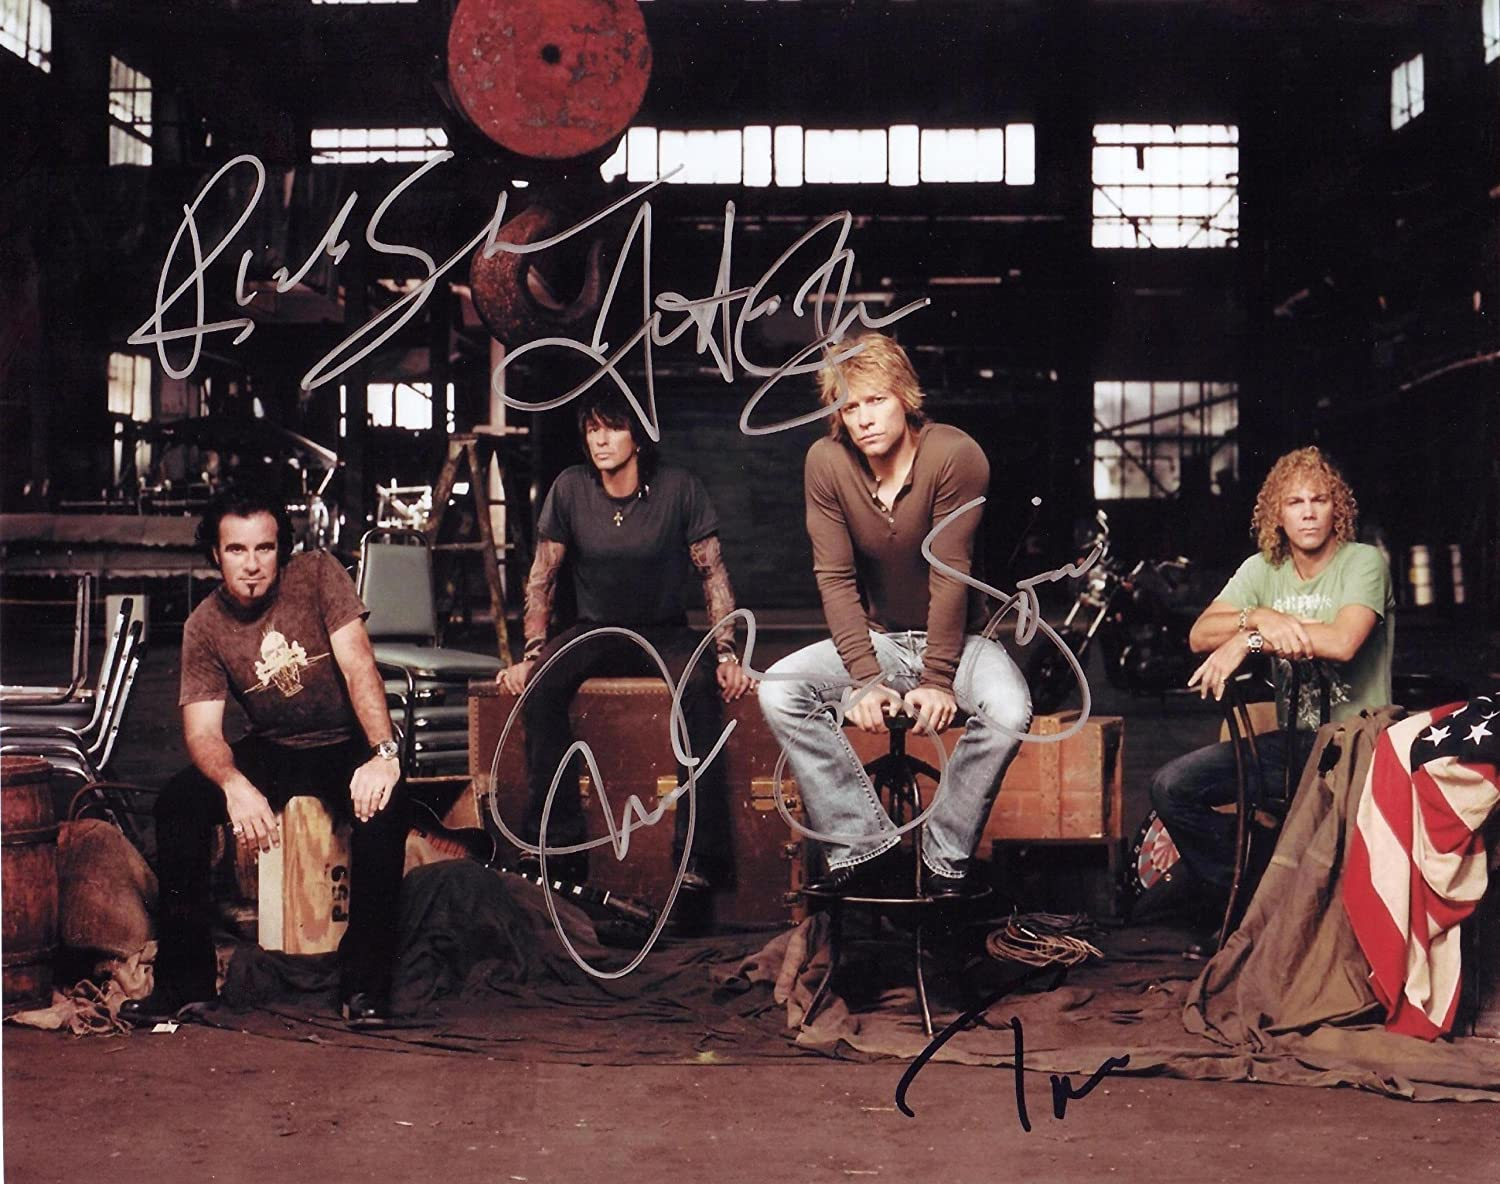 Bon Jovi Autographed Signed 8 X 10 RP Photo - Mint Condition